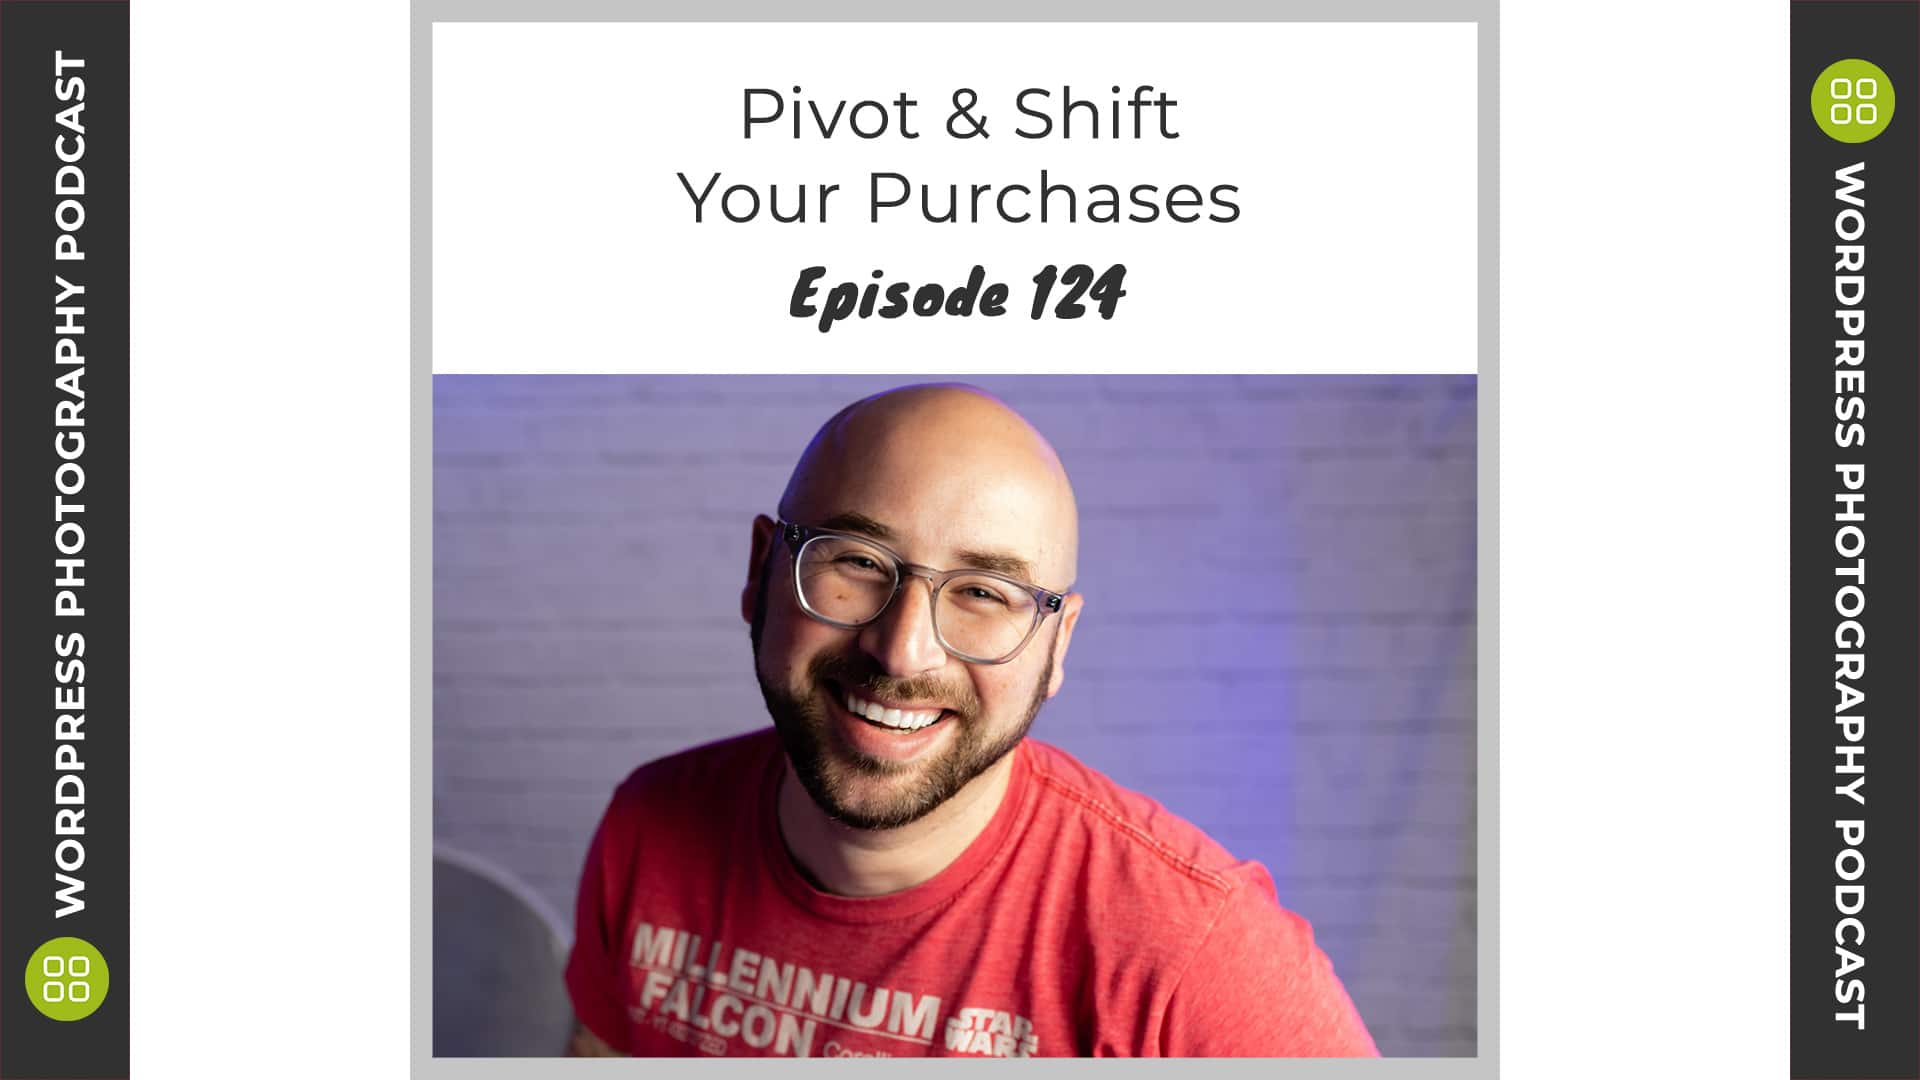 Episode 124 – Pivot & Shift Your Purchases